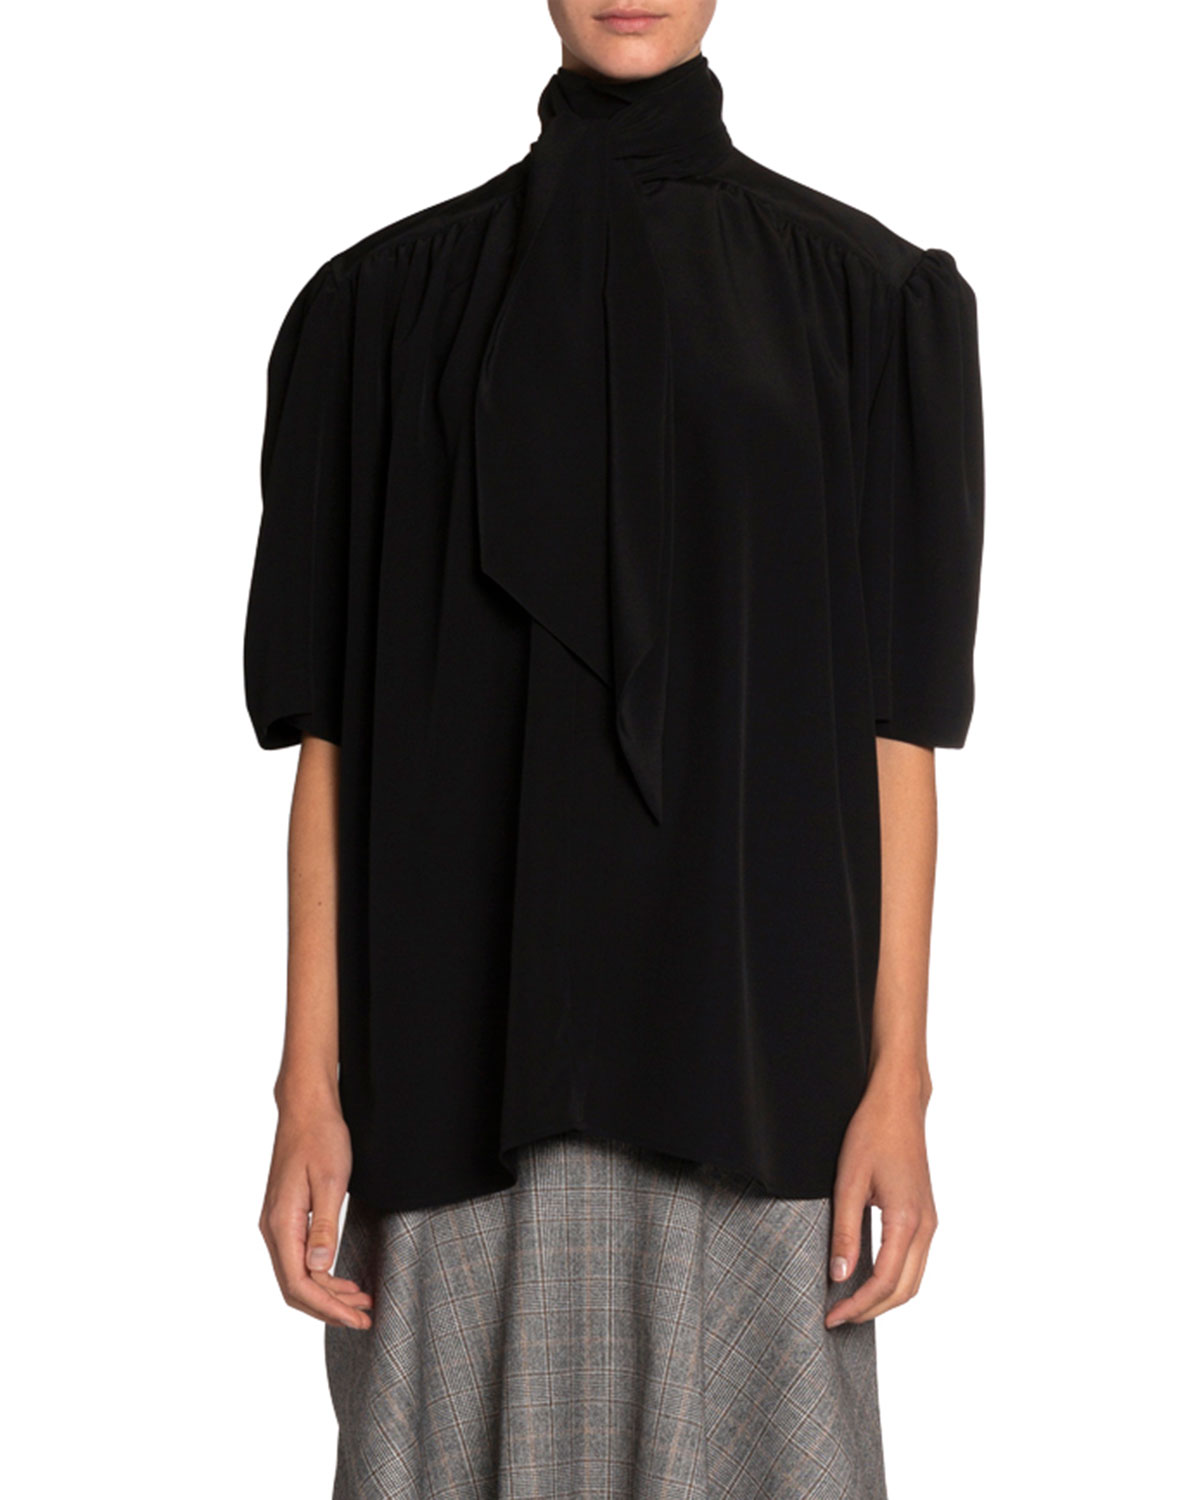 Balenciaga Fluid-Satin Scarf-Neck Blouse